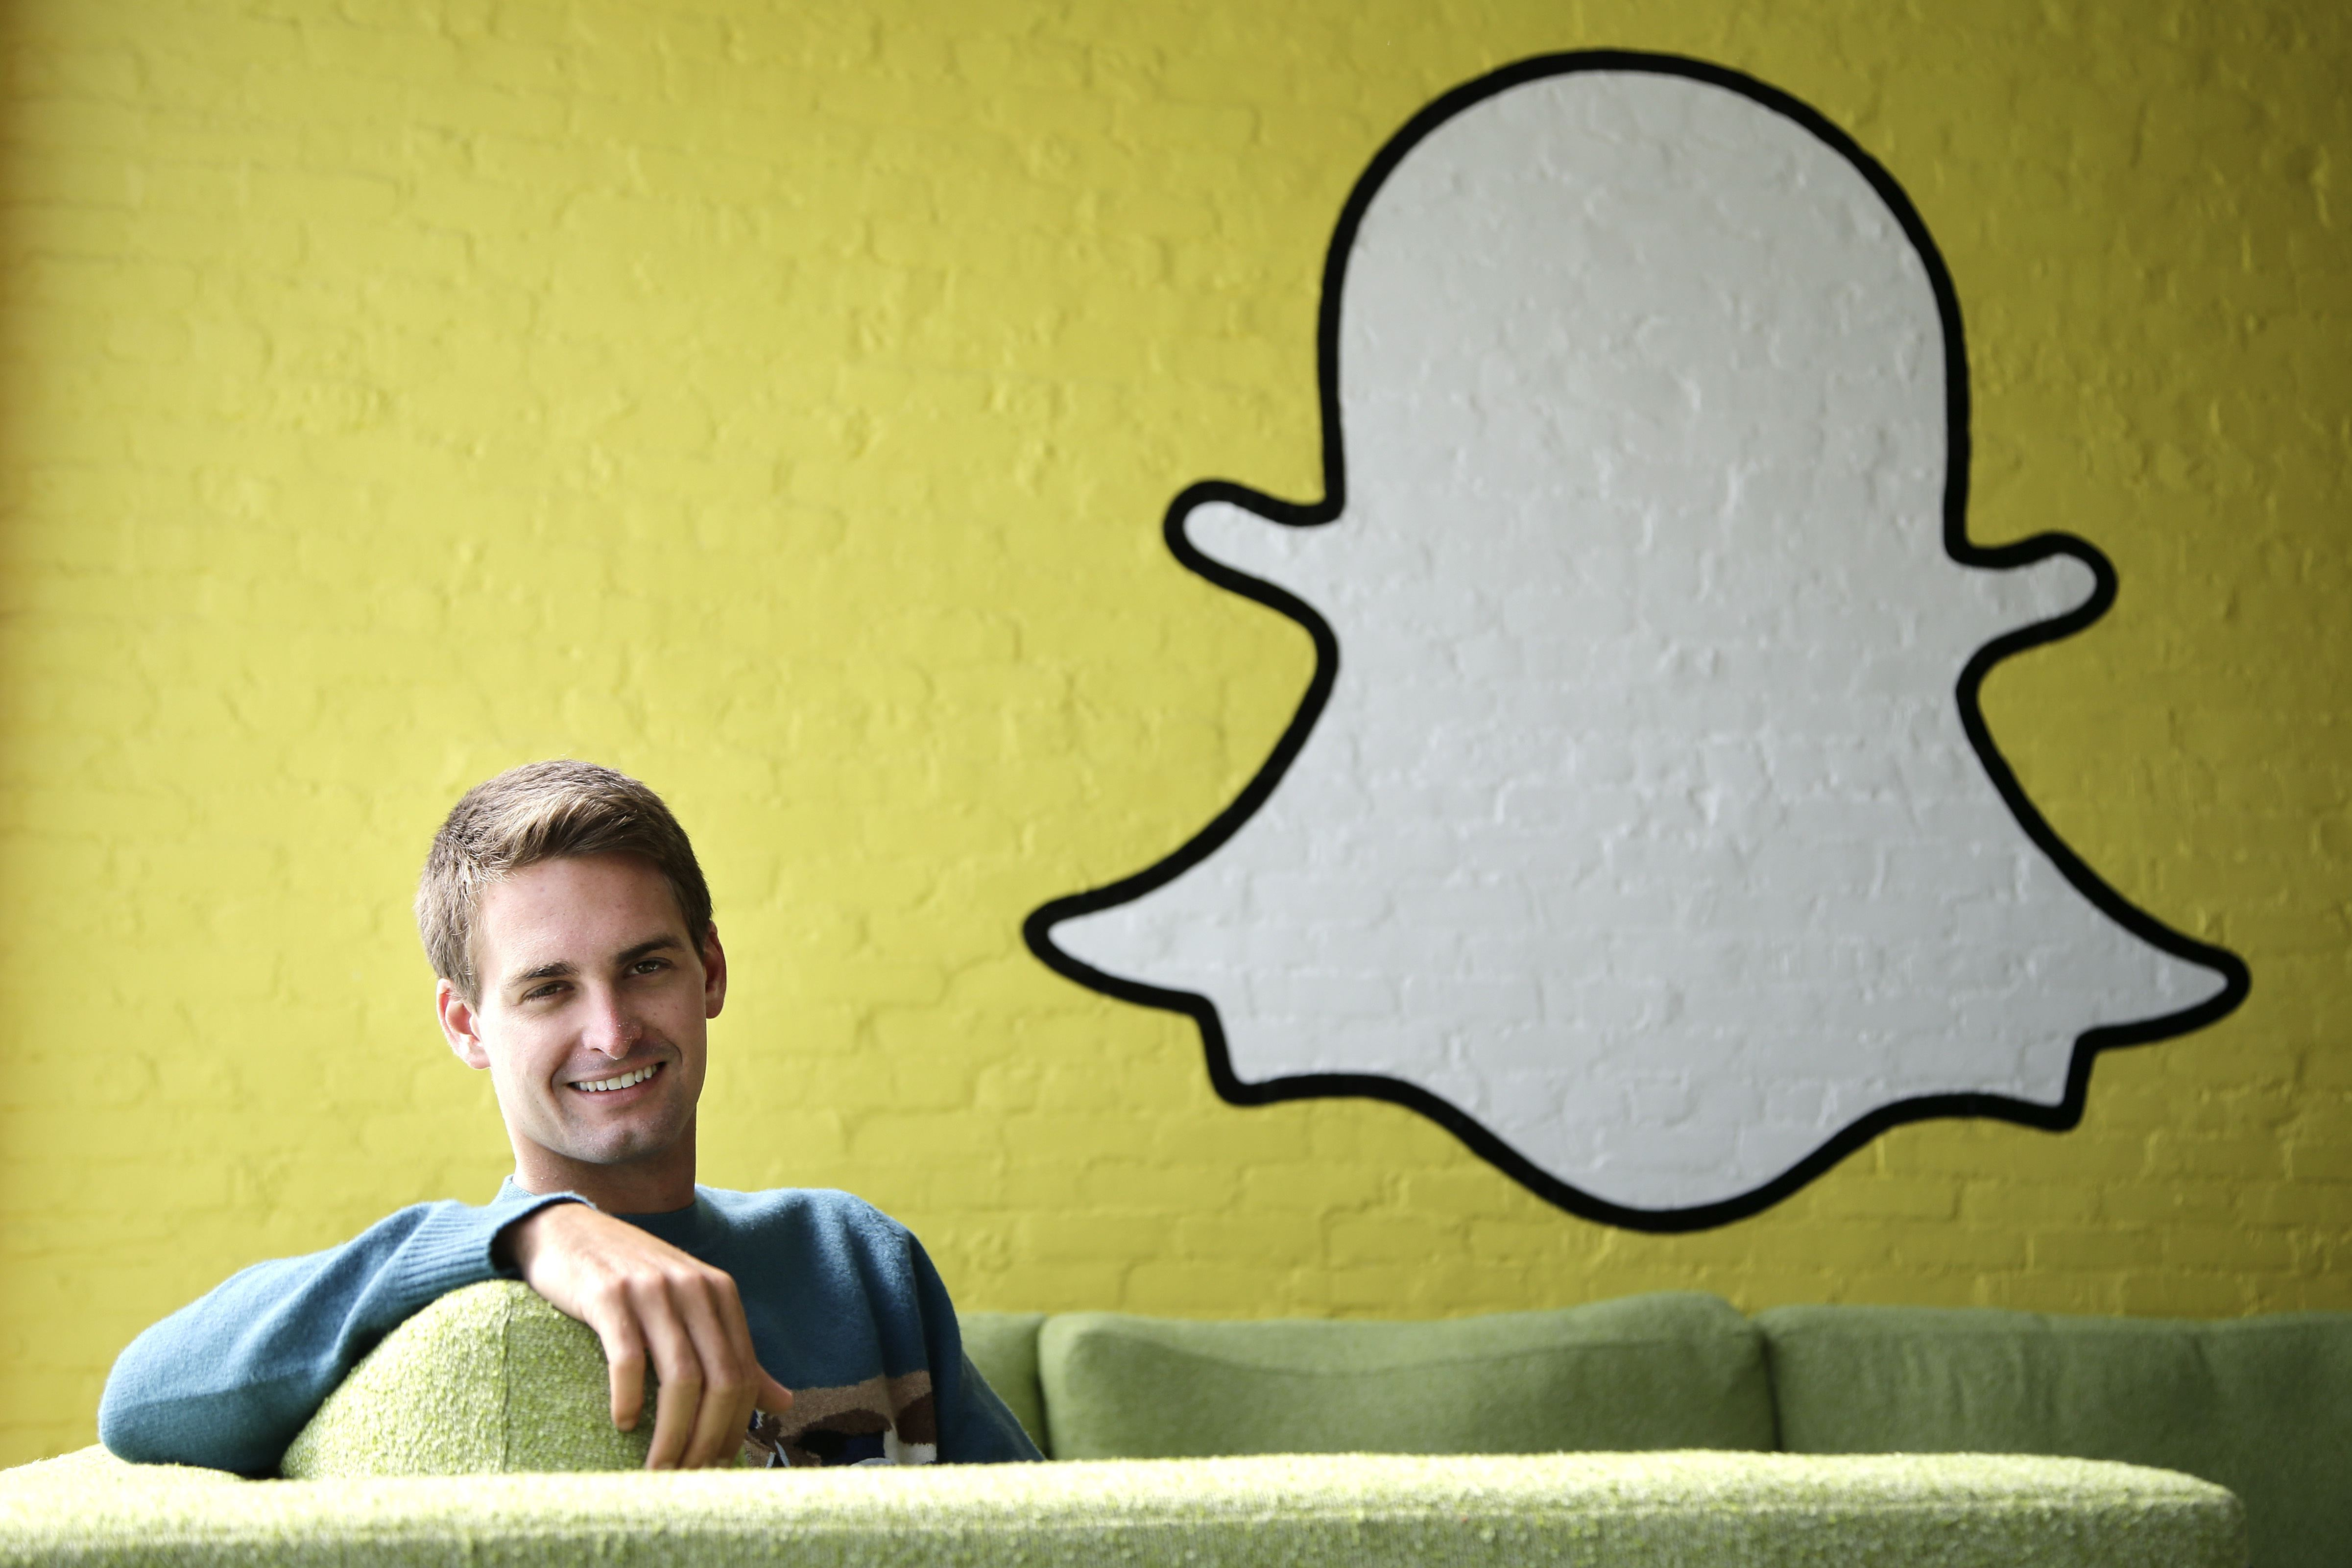 Snap's Much-Awaited IPO Looms, CEO 'Elusive'